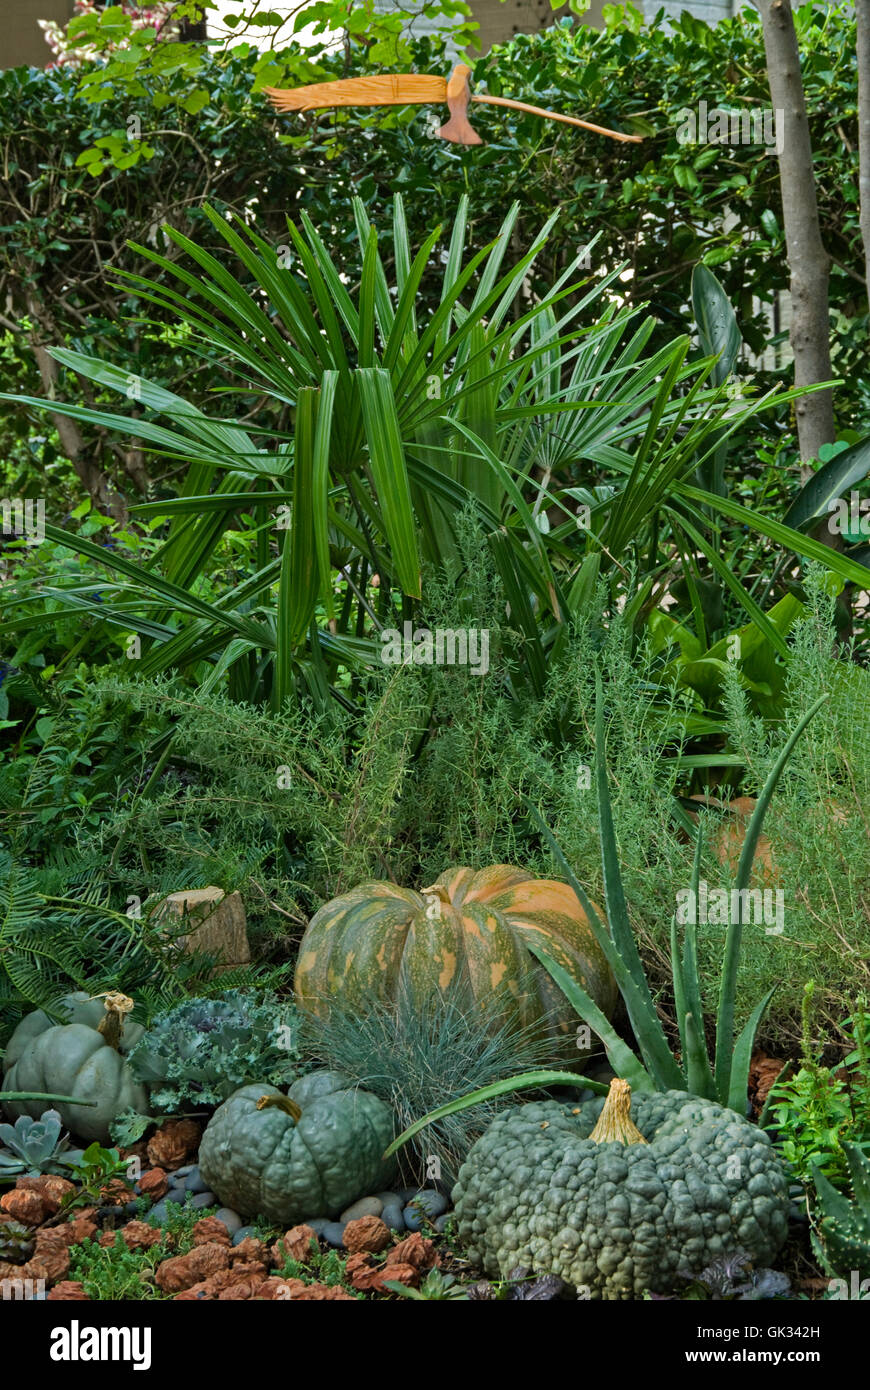 Palm in garden with pumpkins - Stock Image